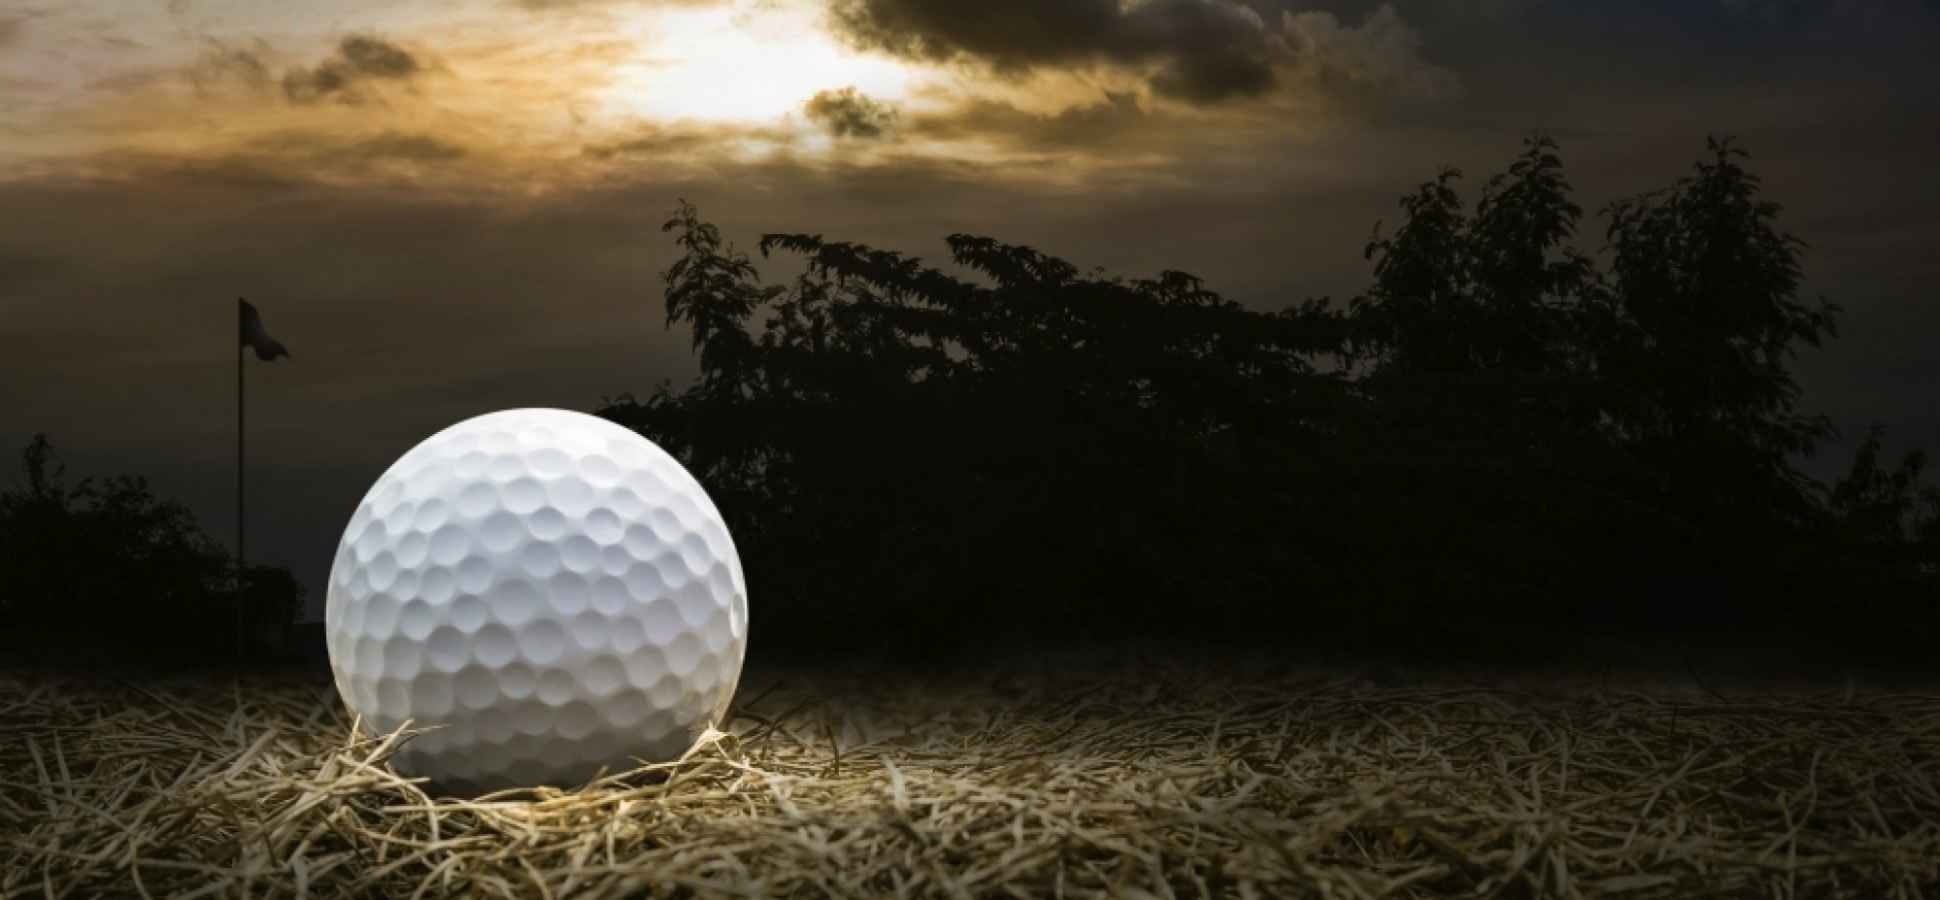 Death By Golf: Why Retirement Is a Bankrupt Industrial Age Idea